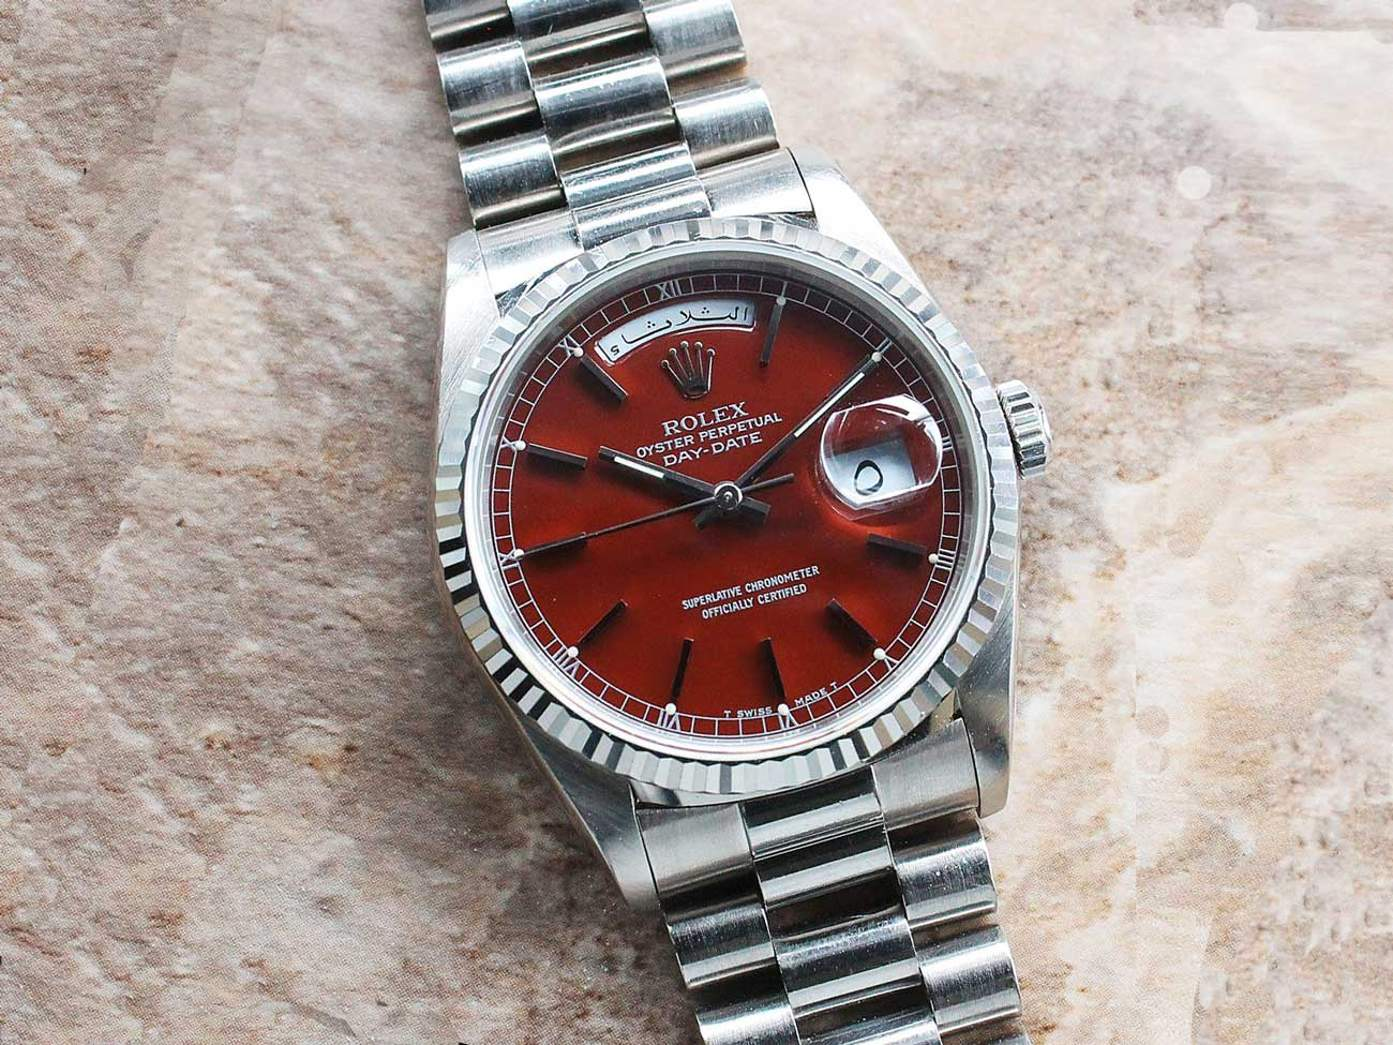 Rolex Oyster Perpetual new models 2020